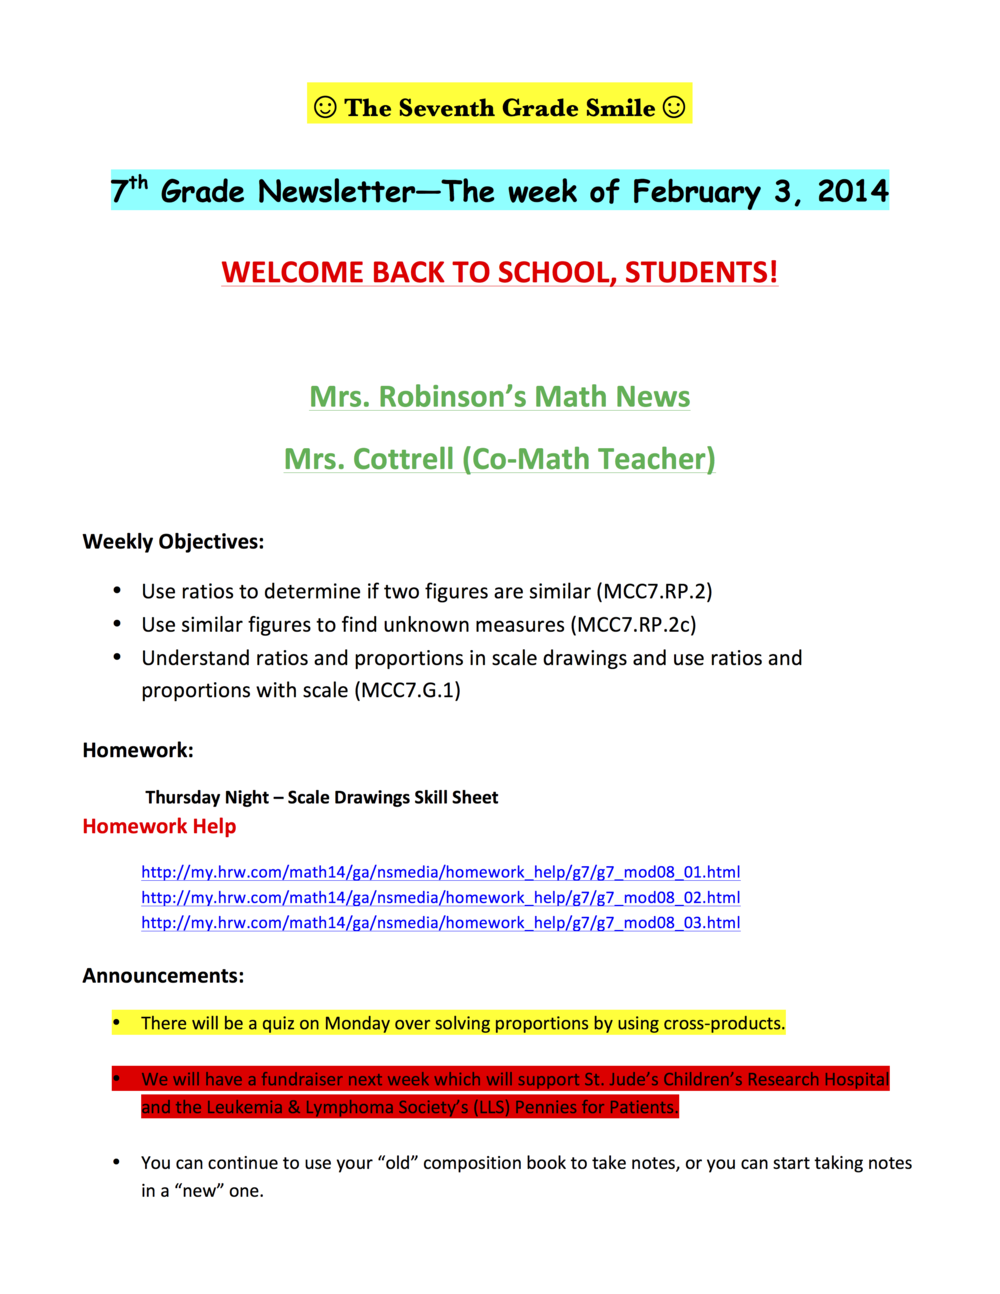 7th grade Newsletter feb 31.png